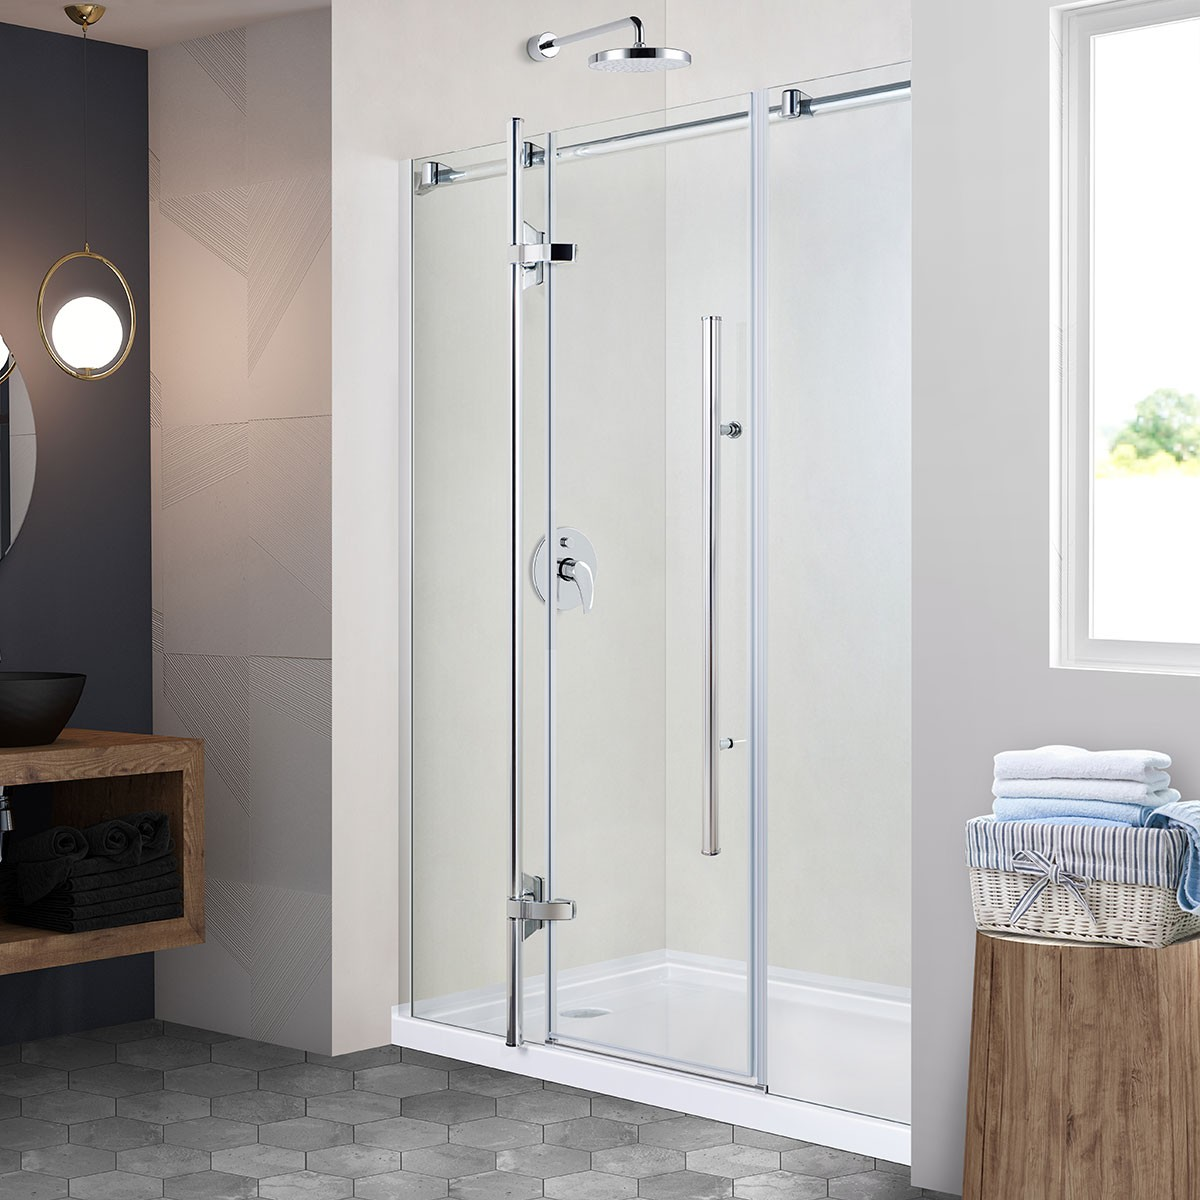 60 In. Pivot Shower Door (DK-CV3003-8)